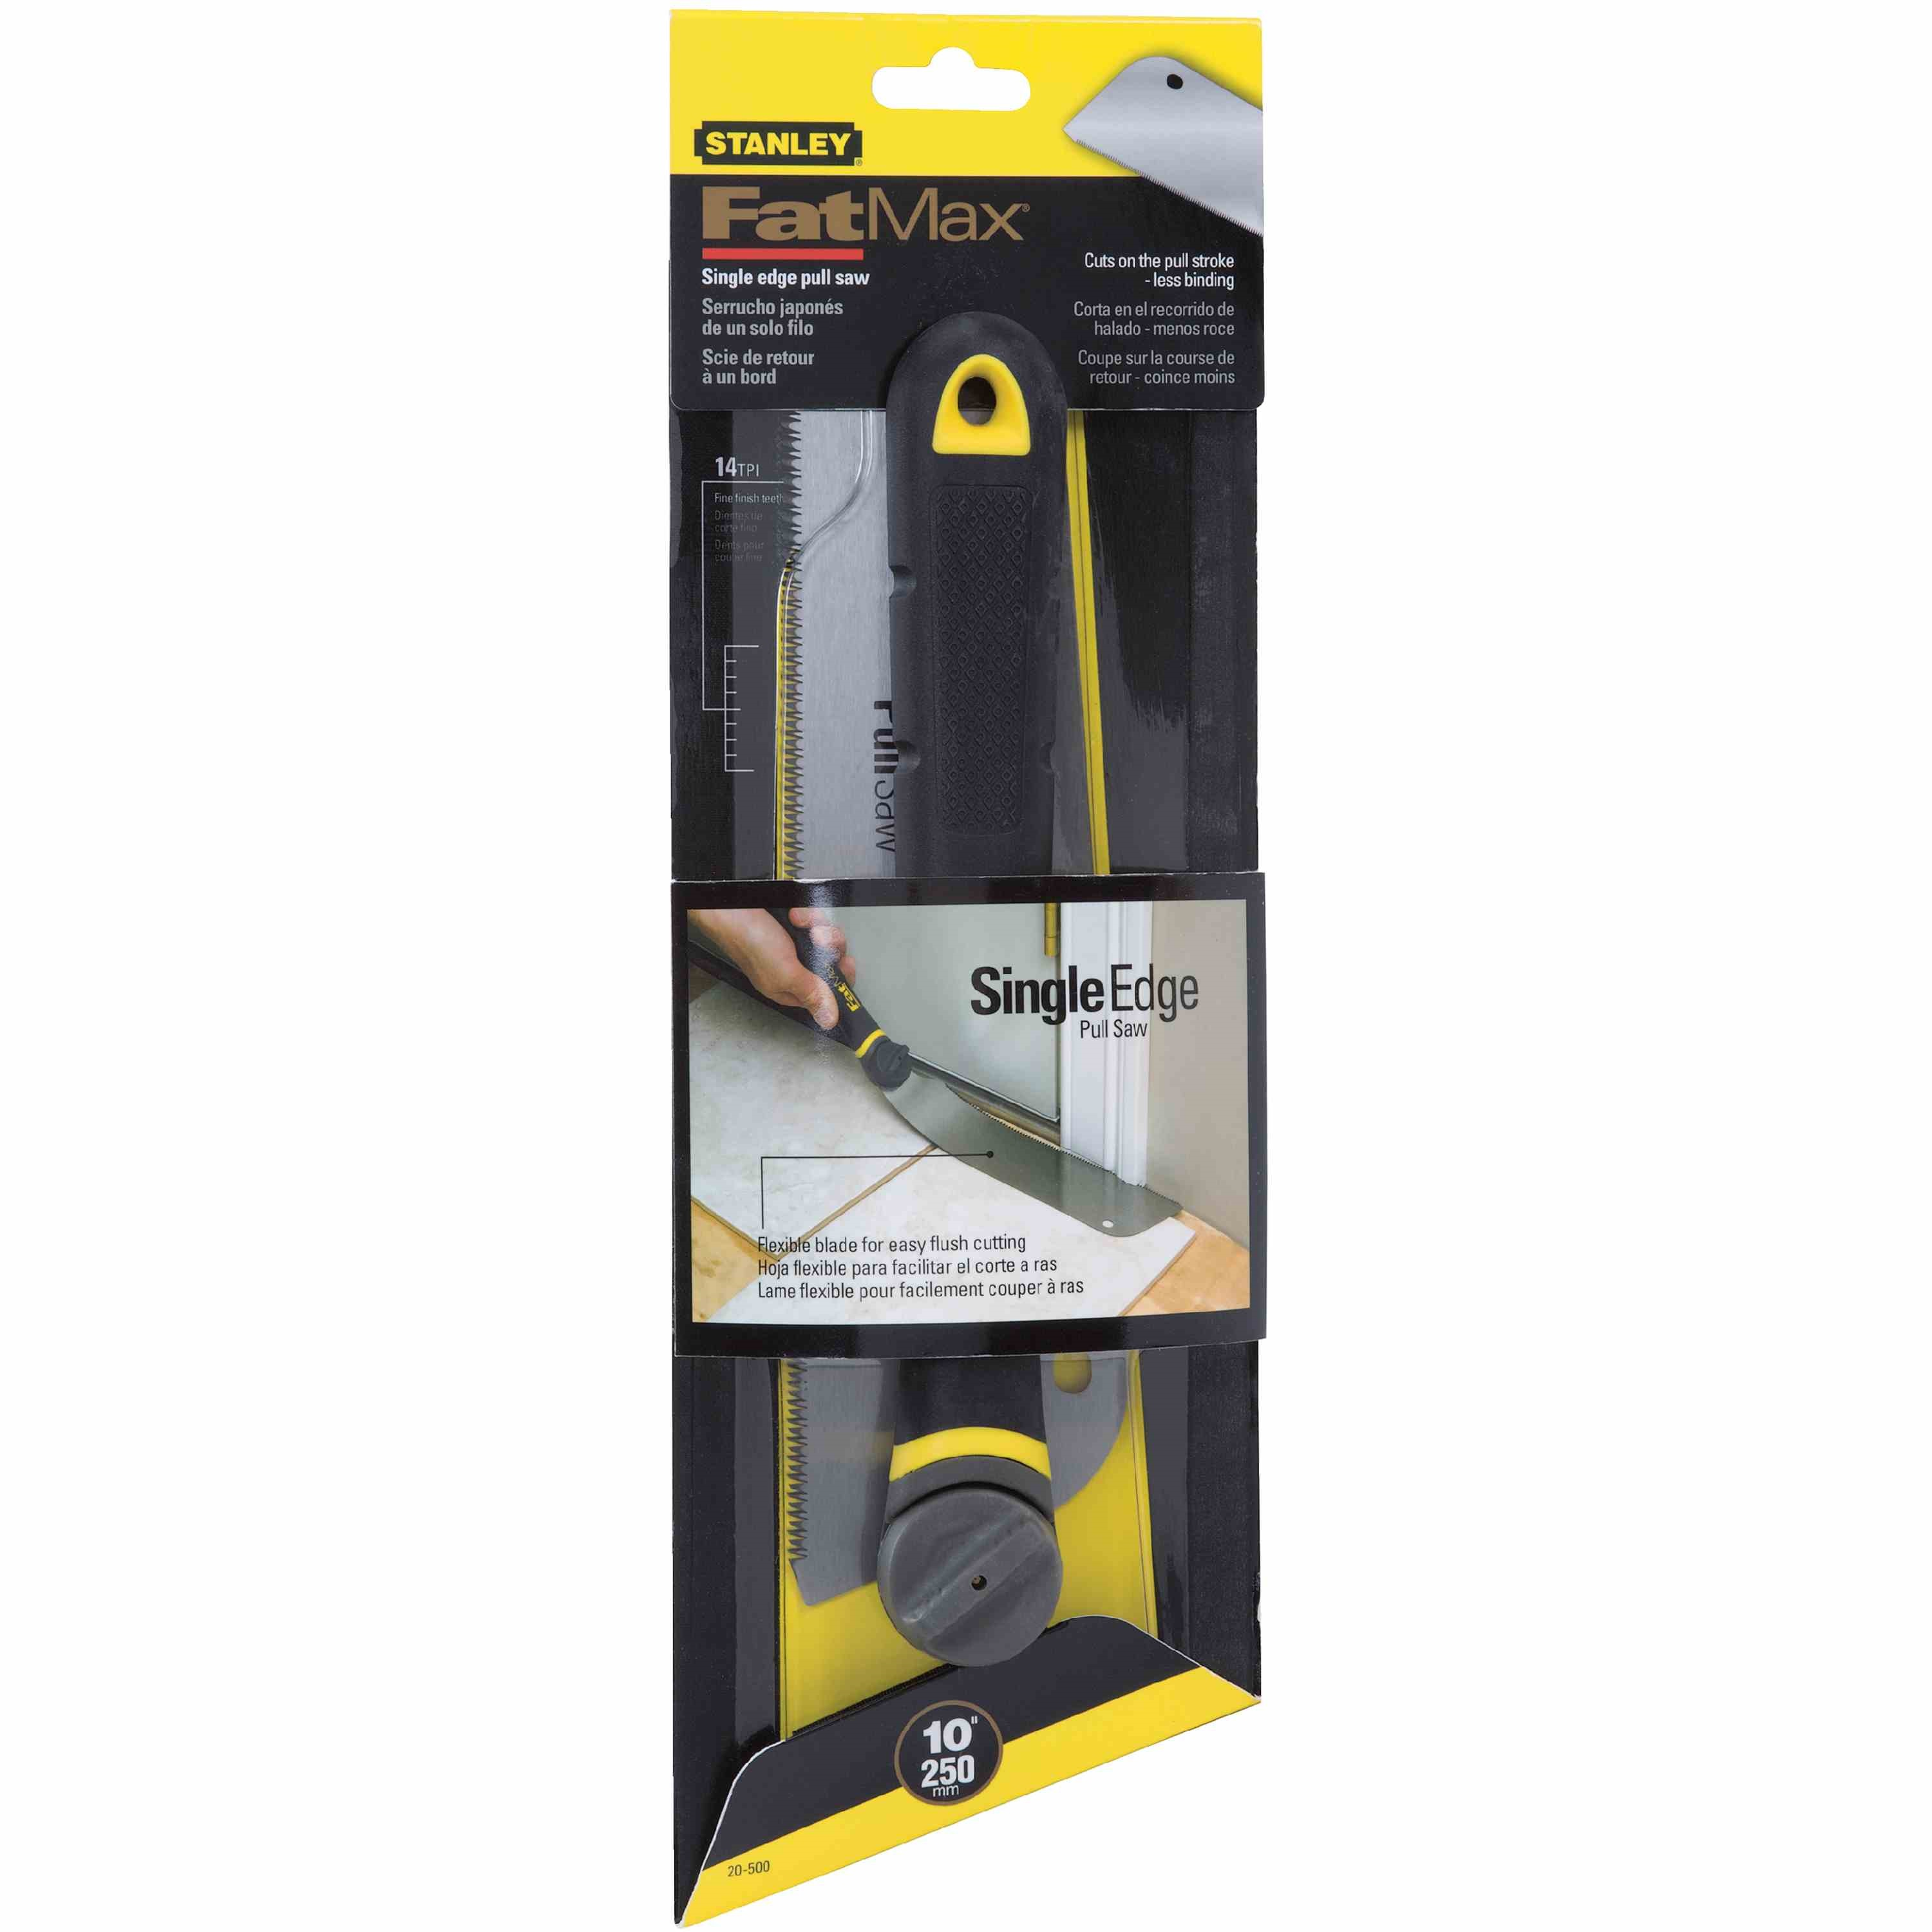 Stanley Tools - 9 in FATMAX Single Edge Pull Saw - 20-500